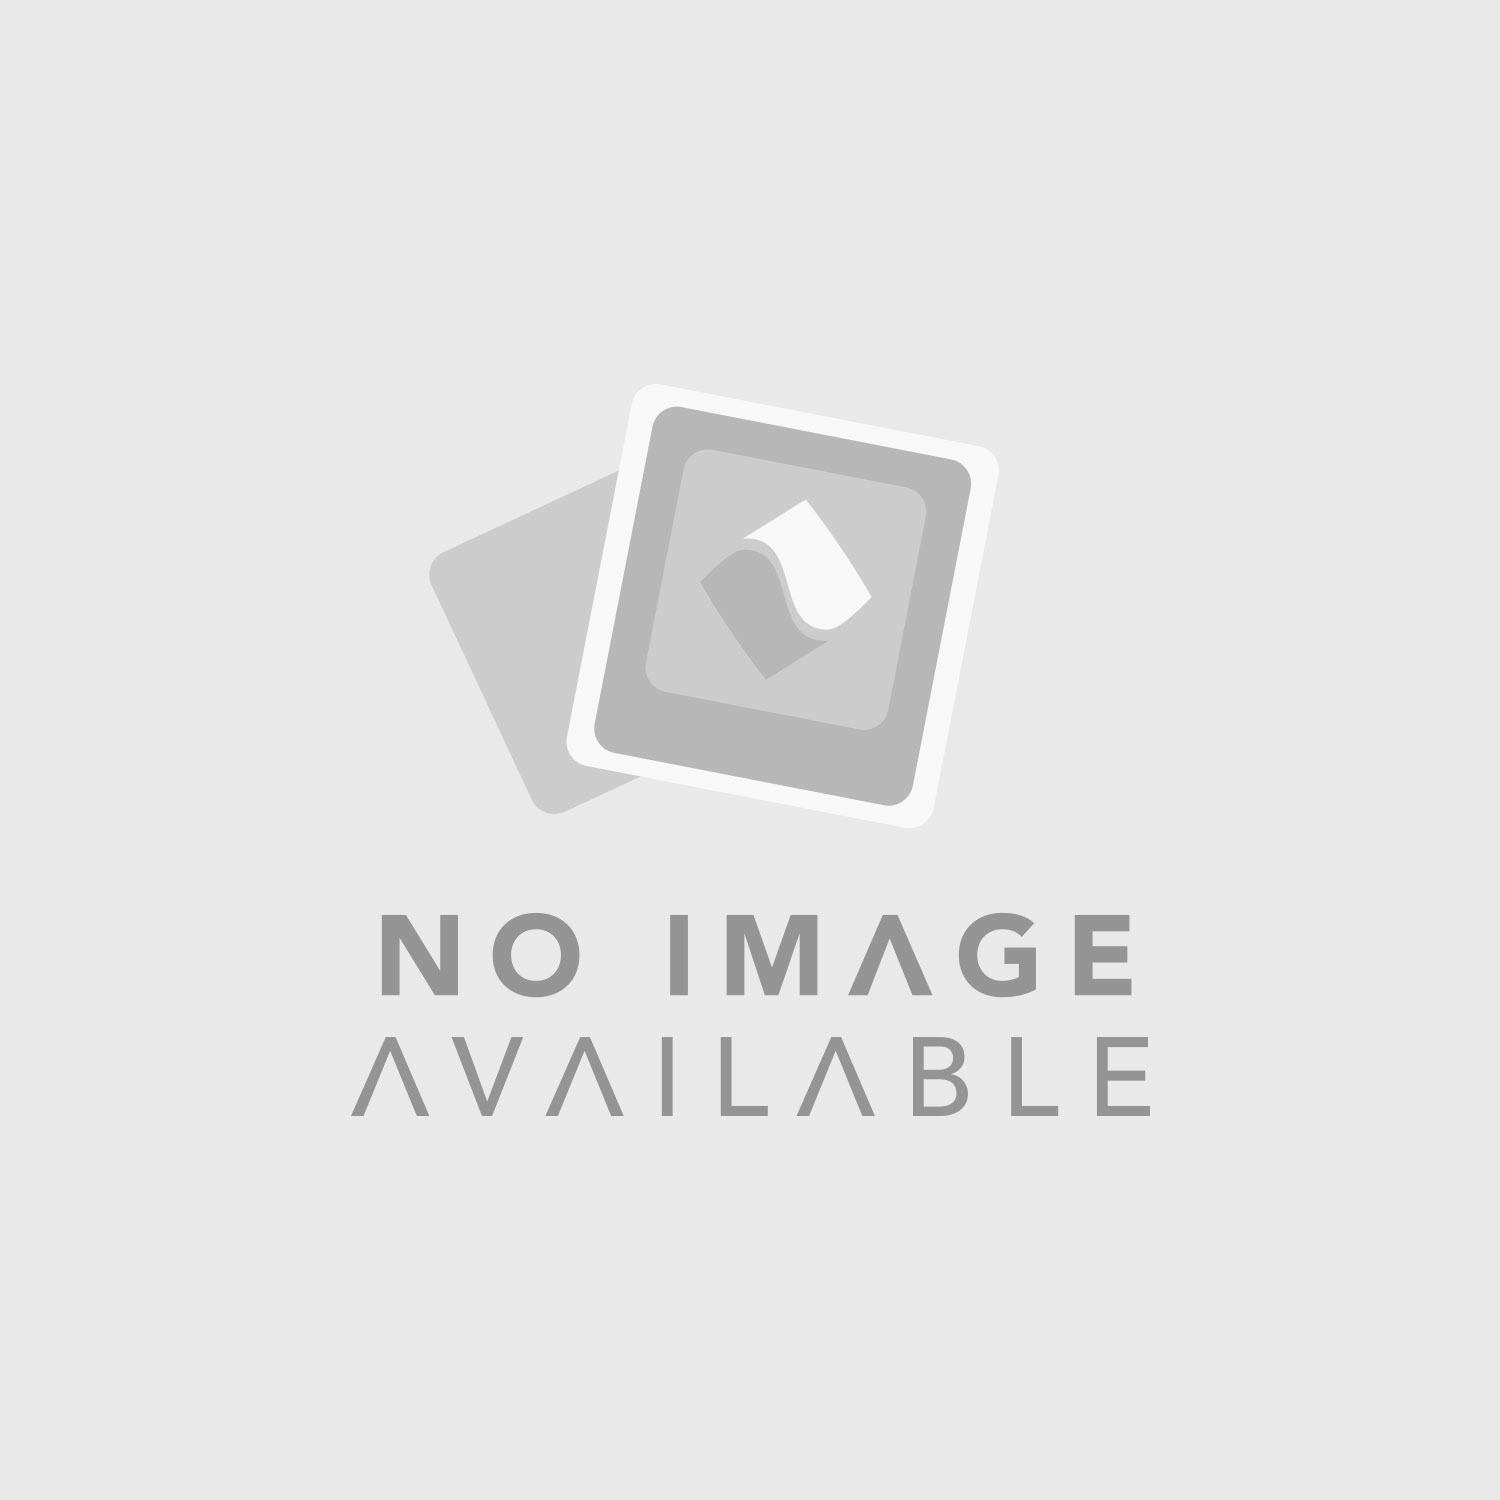 Rode RodeCaster Pro Hands Free Podcasting/Broadcasting Bundle with AKG HSD271 Headset